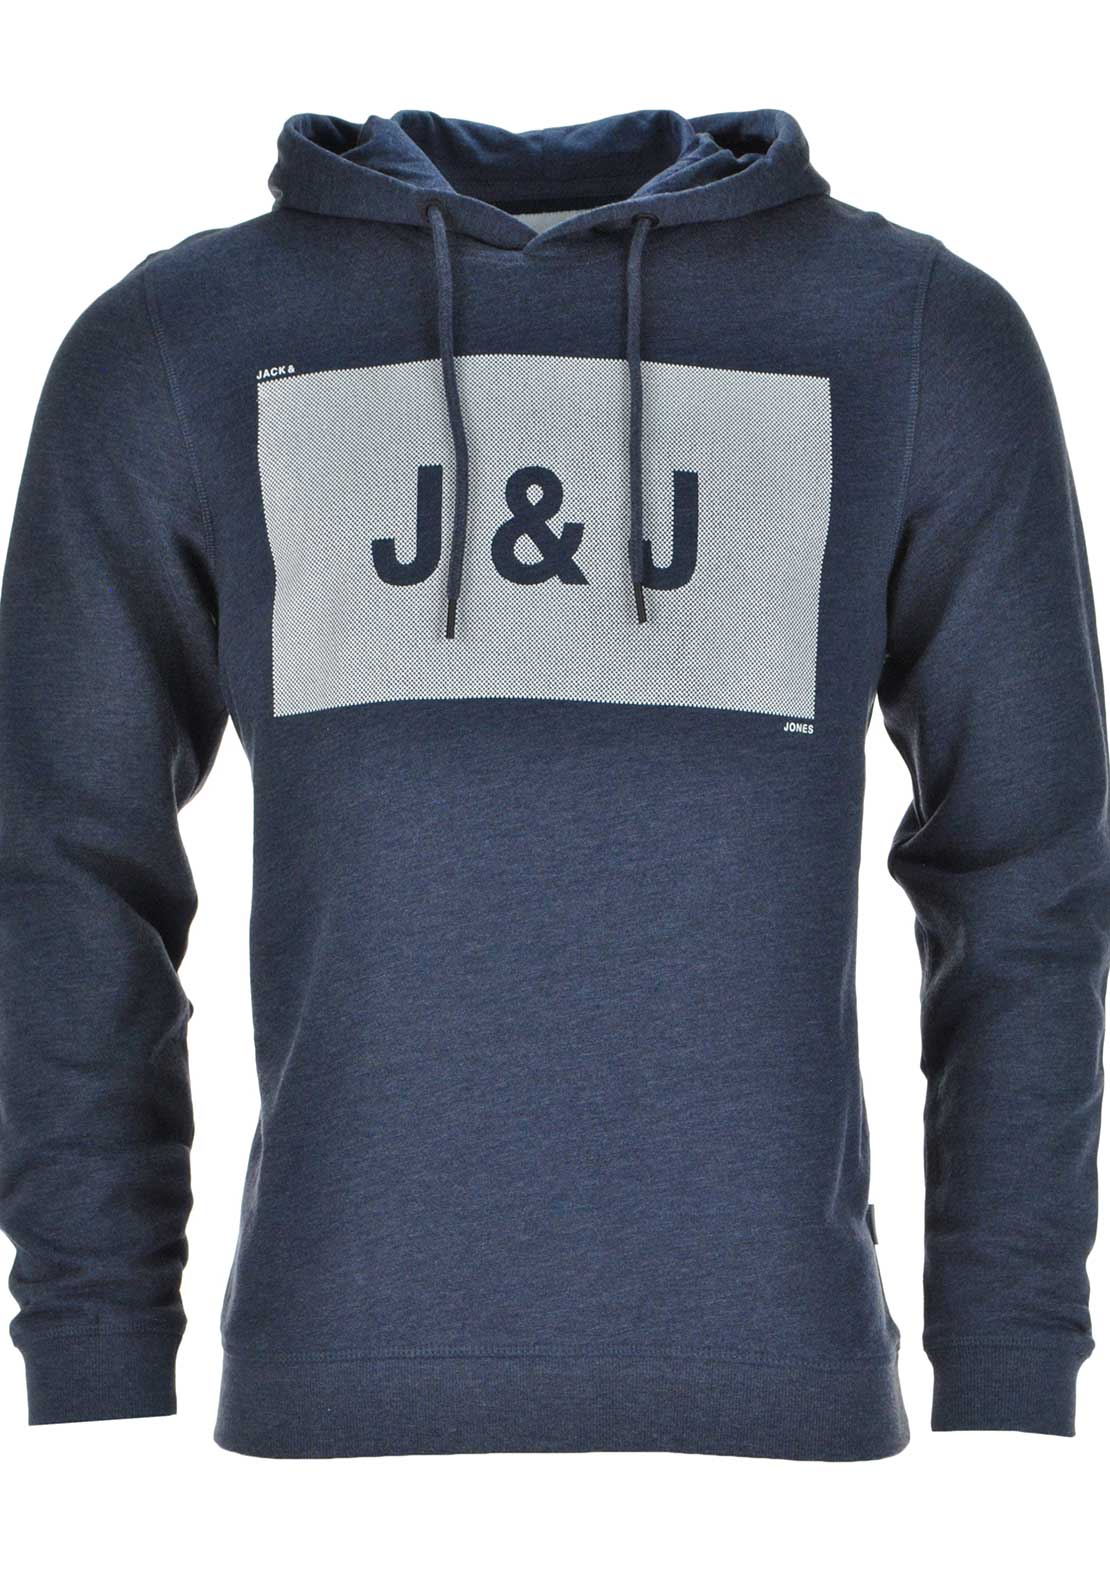 Jack & Jones Take Graphic Print Hoodie Jumper, Navy Blazer